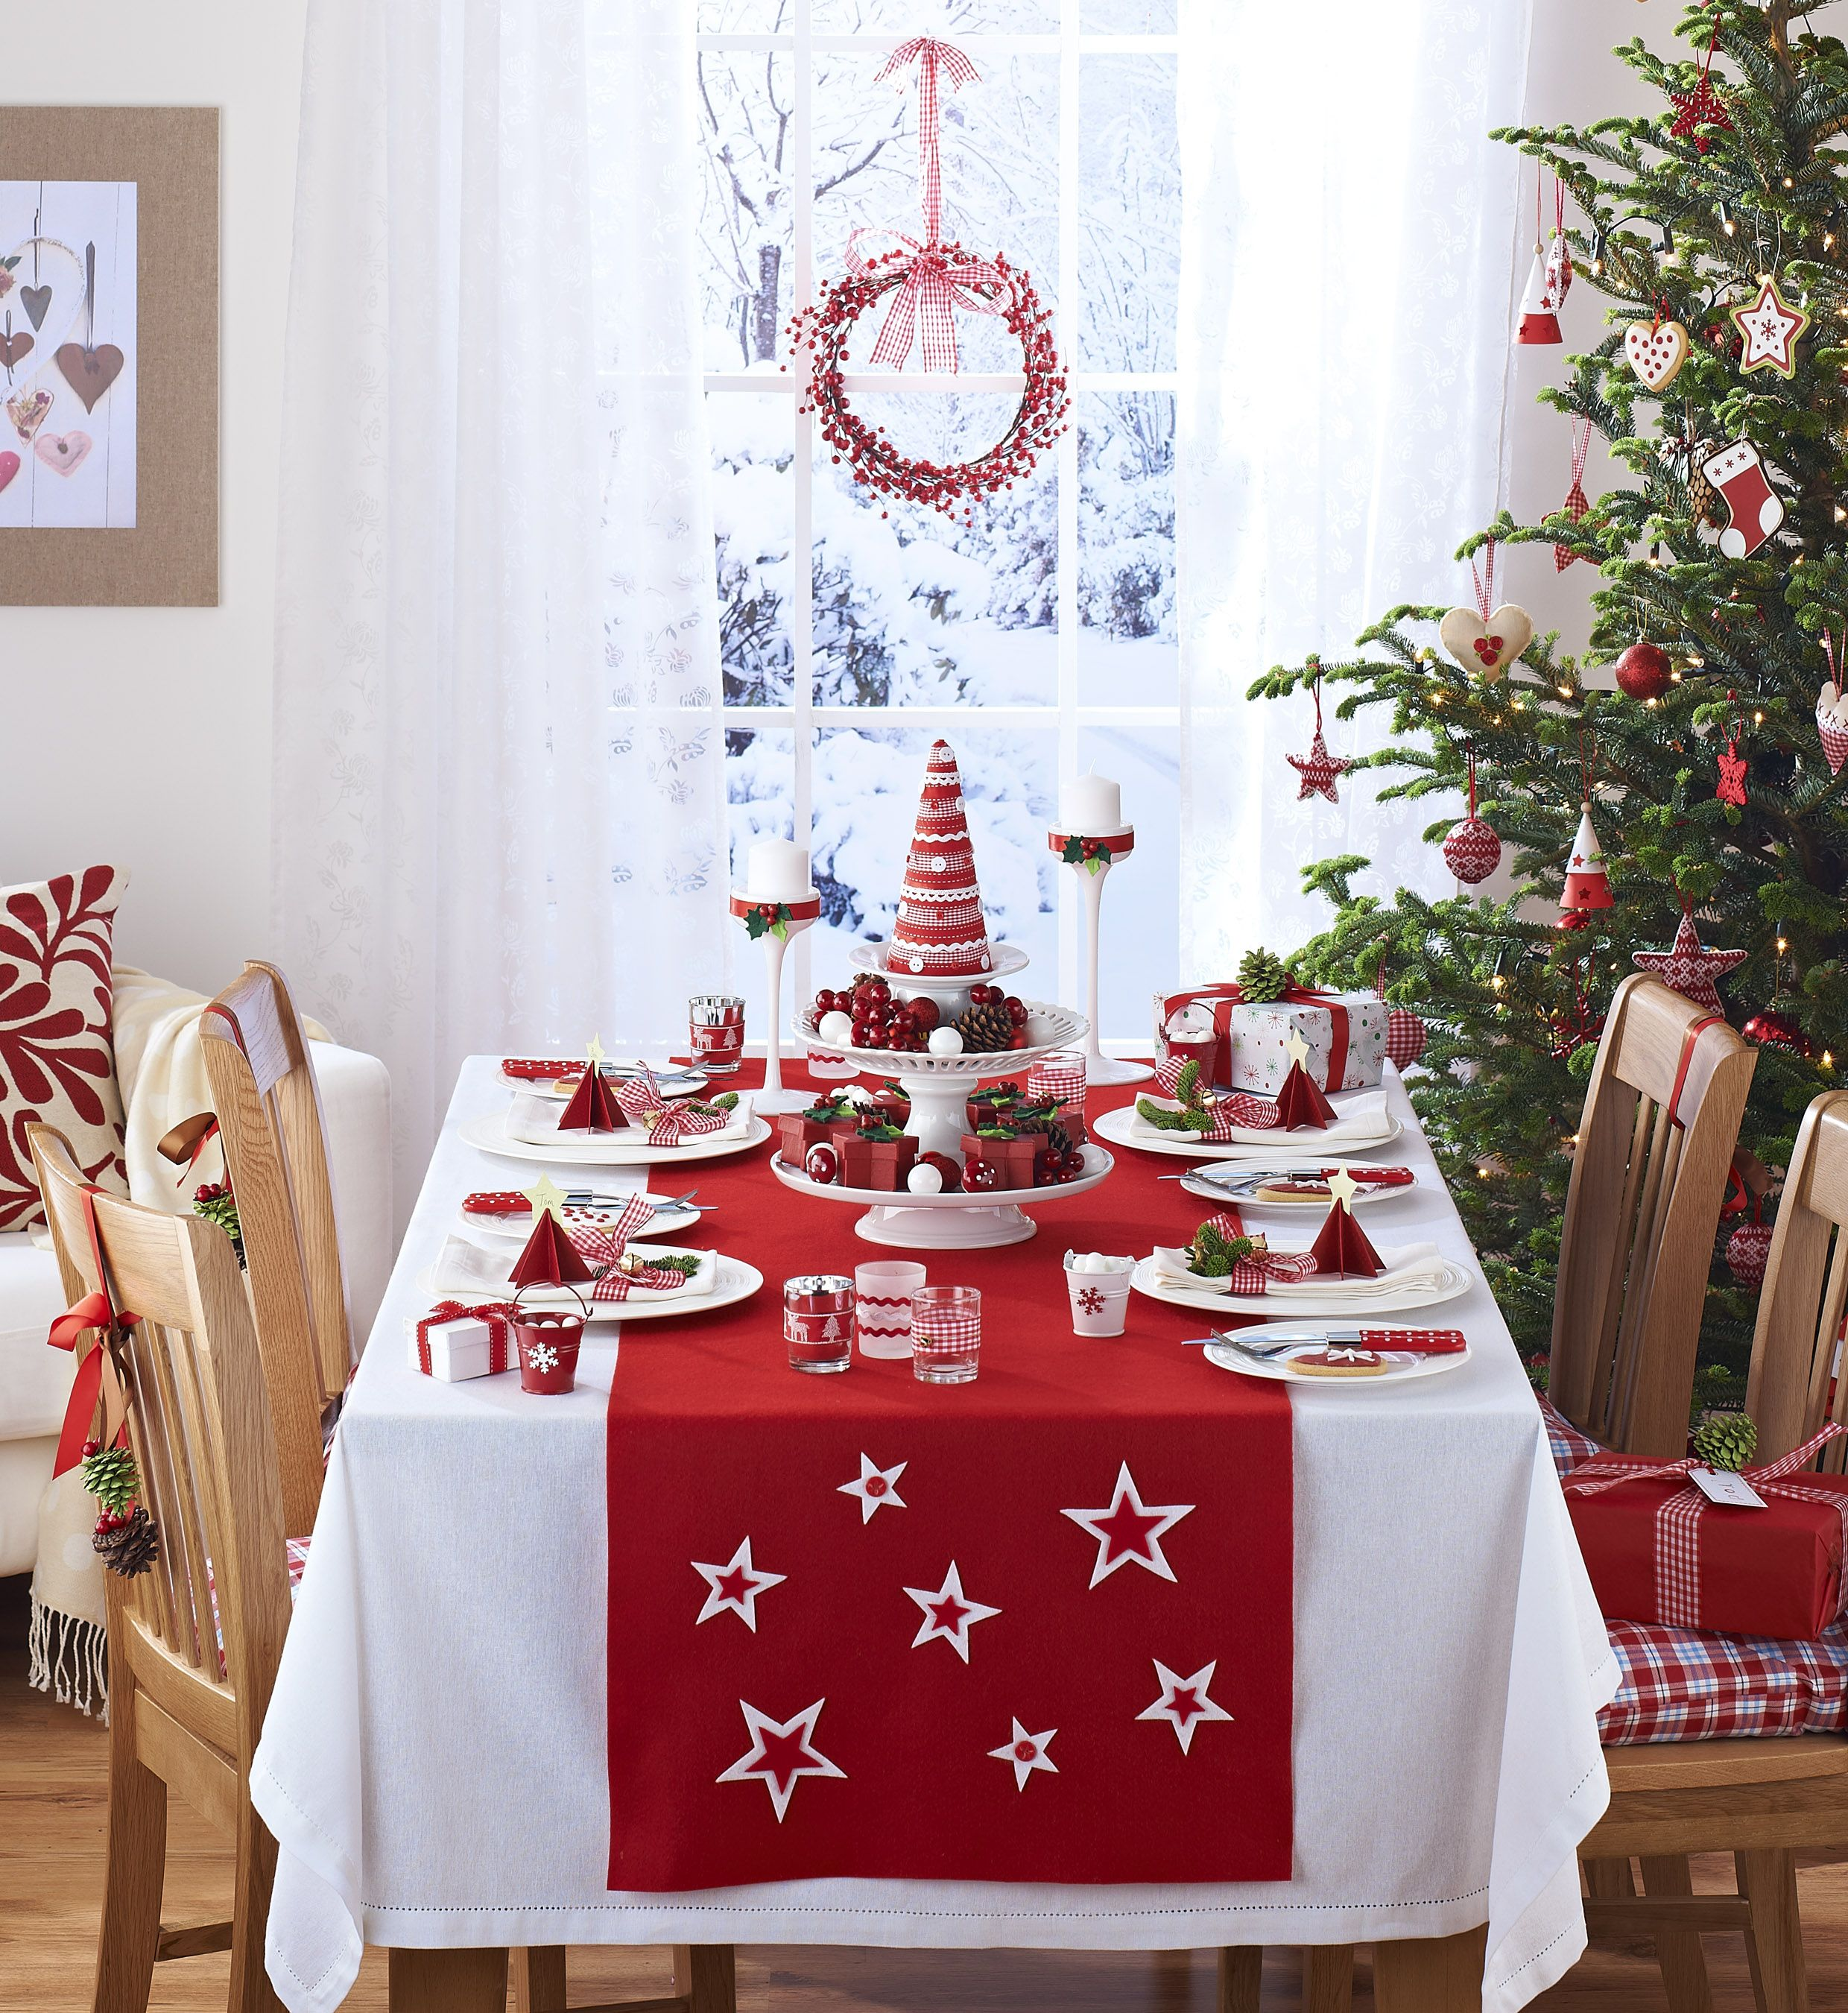 Christmas Kitchen Curtains Tablecloth Window Design Ideas Christmas Decorations Red Christmas Decor Christmas Table Settings